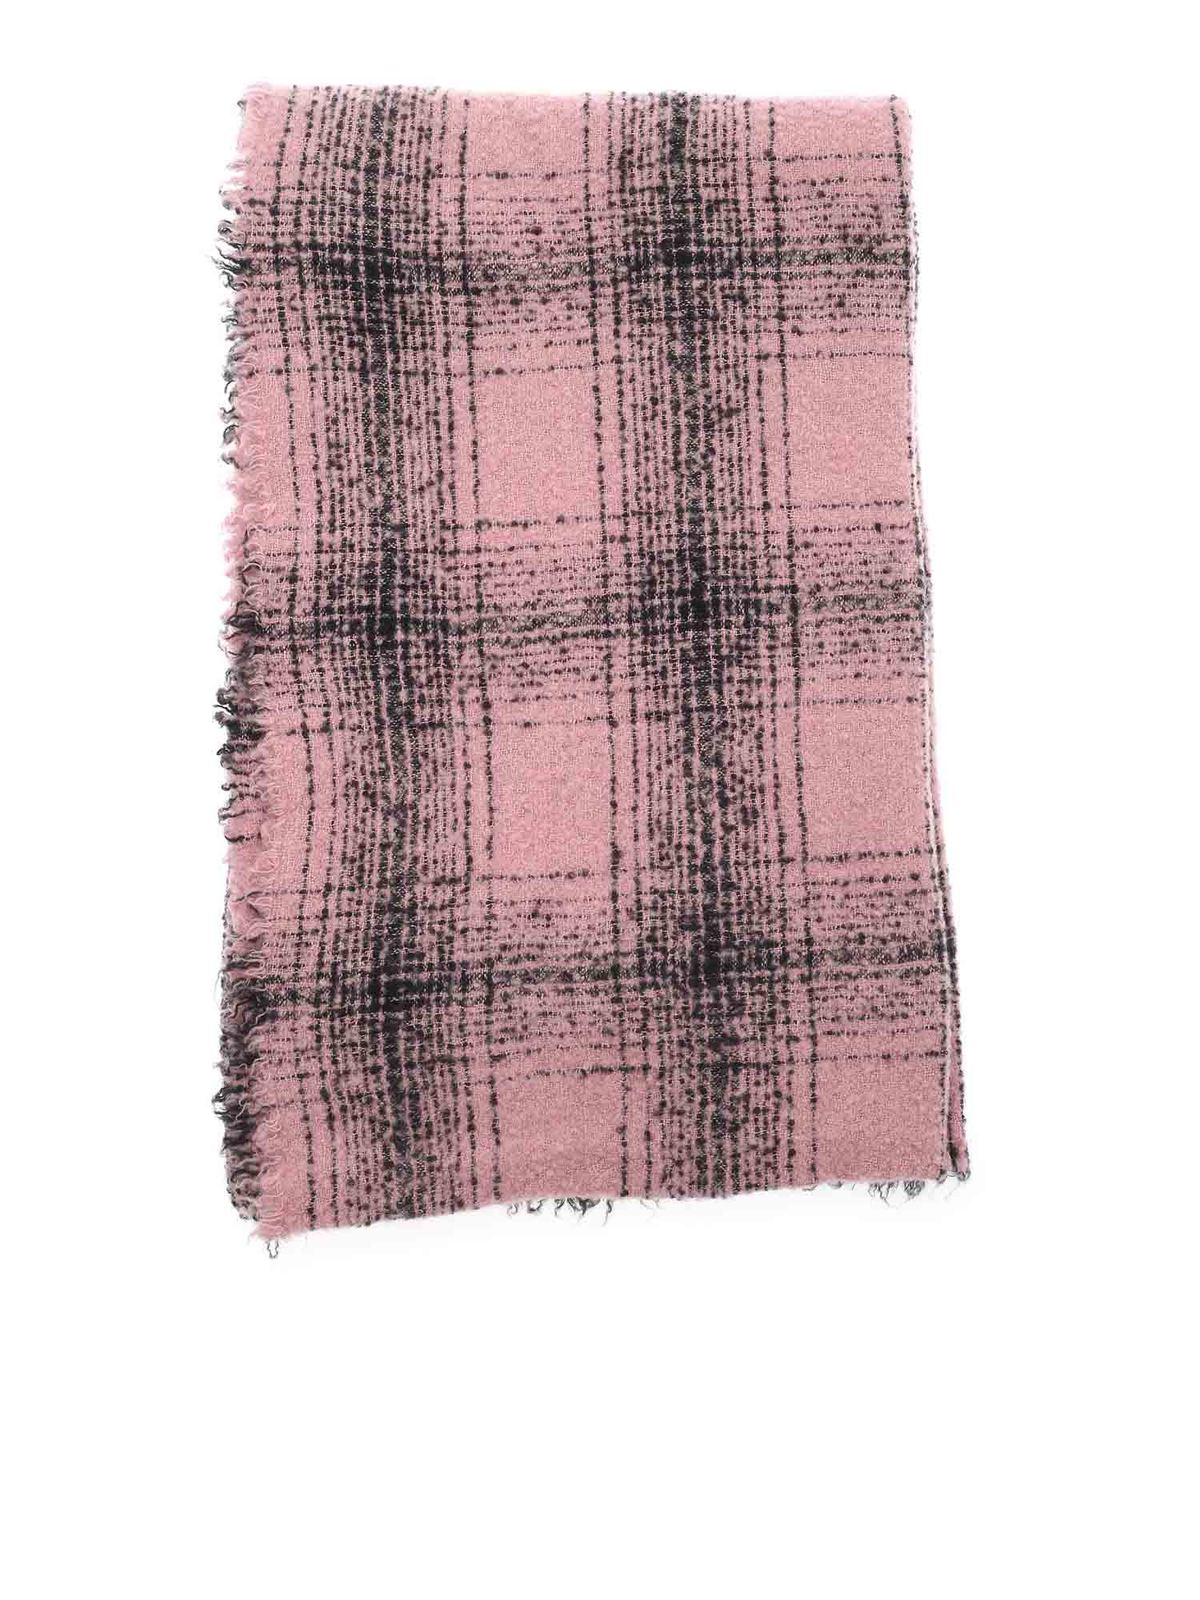 Faliero Sarti Scarves MILA CHECKED SCARF IN PINK AND BLACK